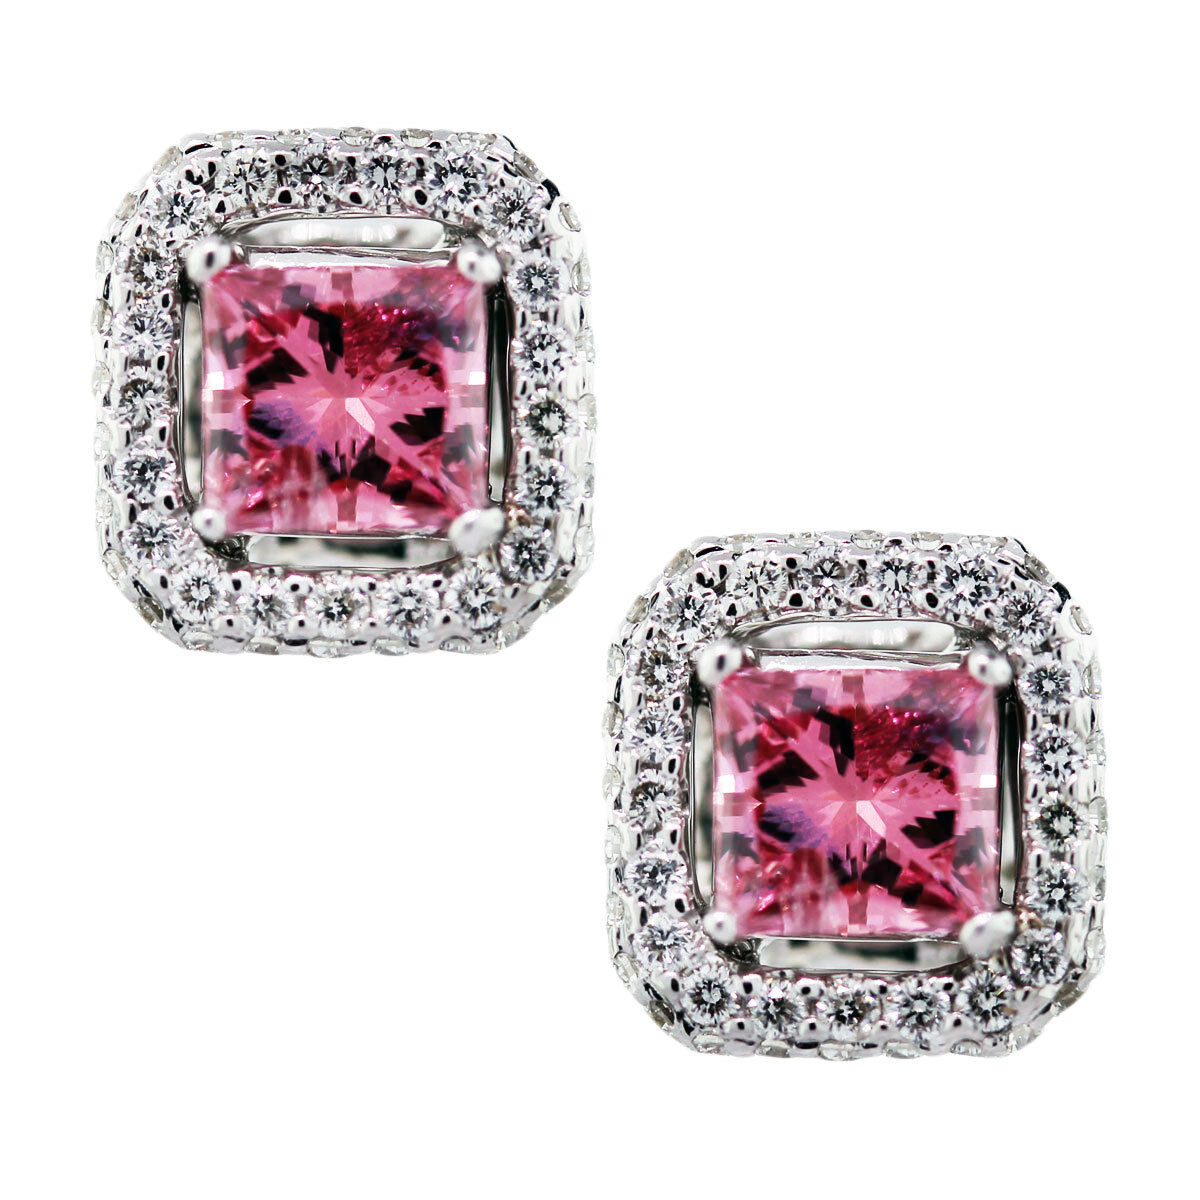 pink diamond earrings, pink diamonds, pink diamonds boca raton